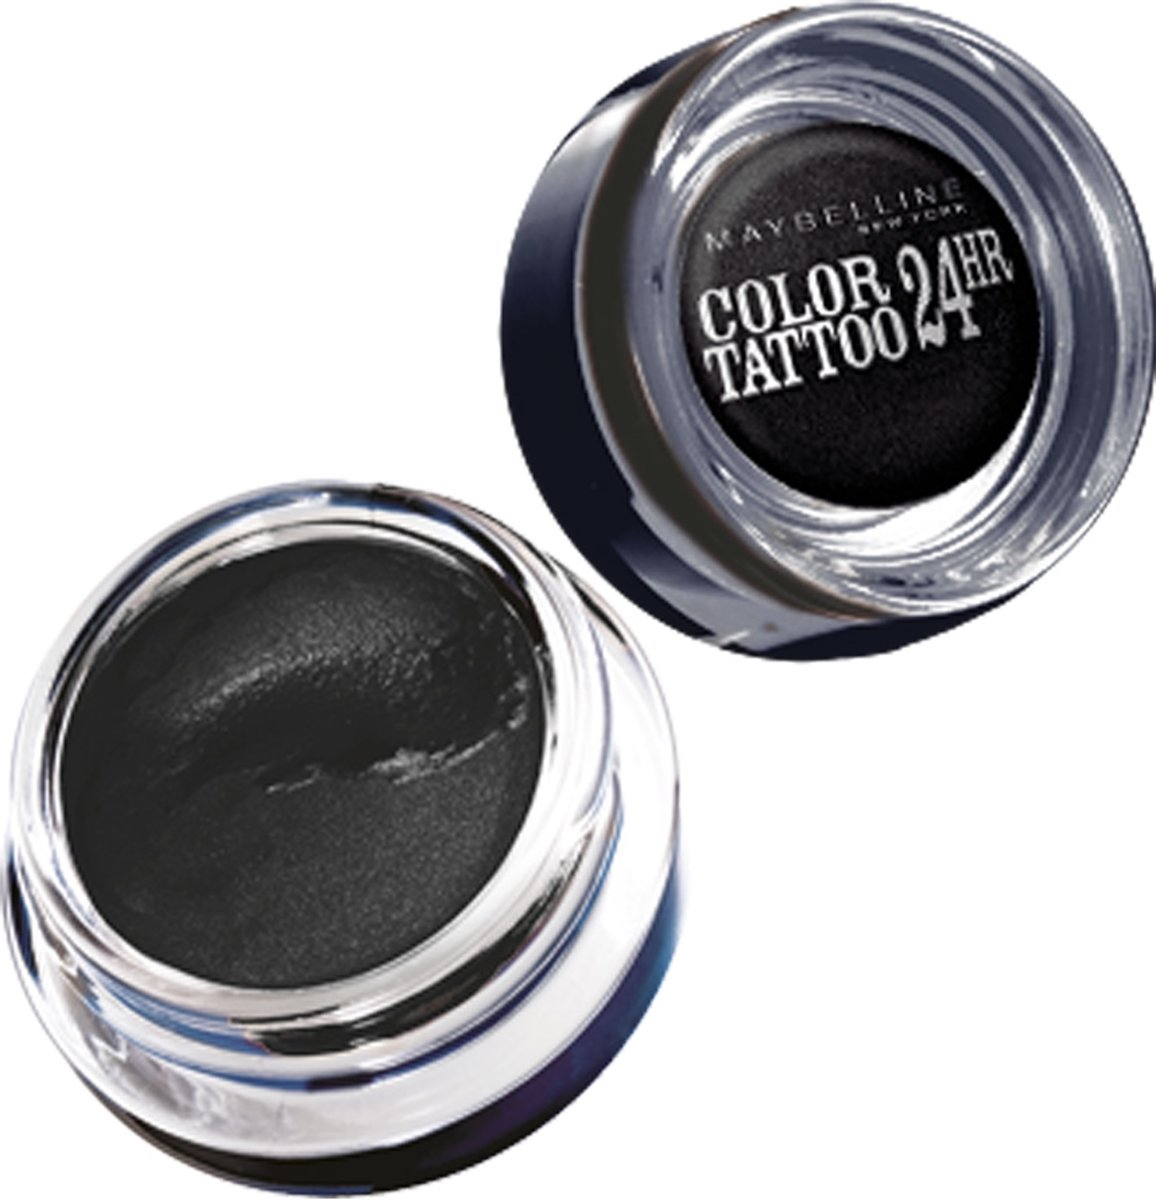 Maybelline Color Tattoo 24H - 60 Timeless Black - Zwart - Oogschaduw